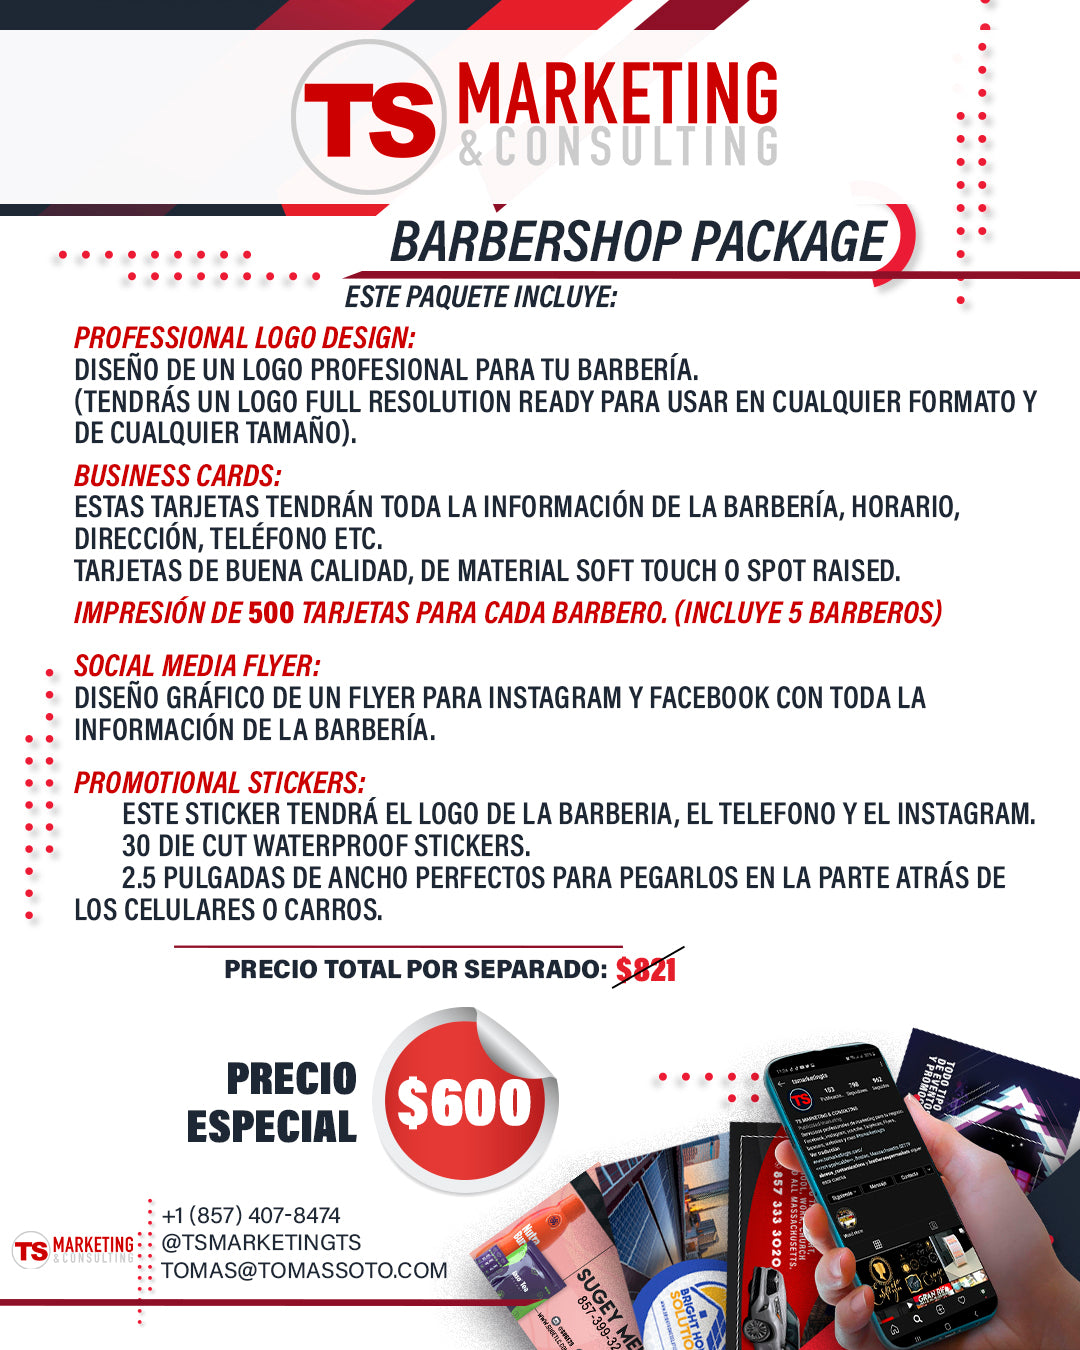 BARBERSHOP PACKAGE